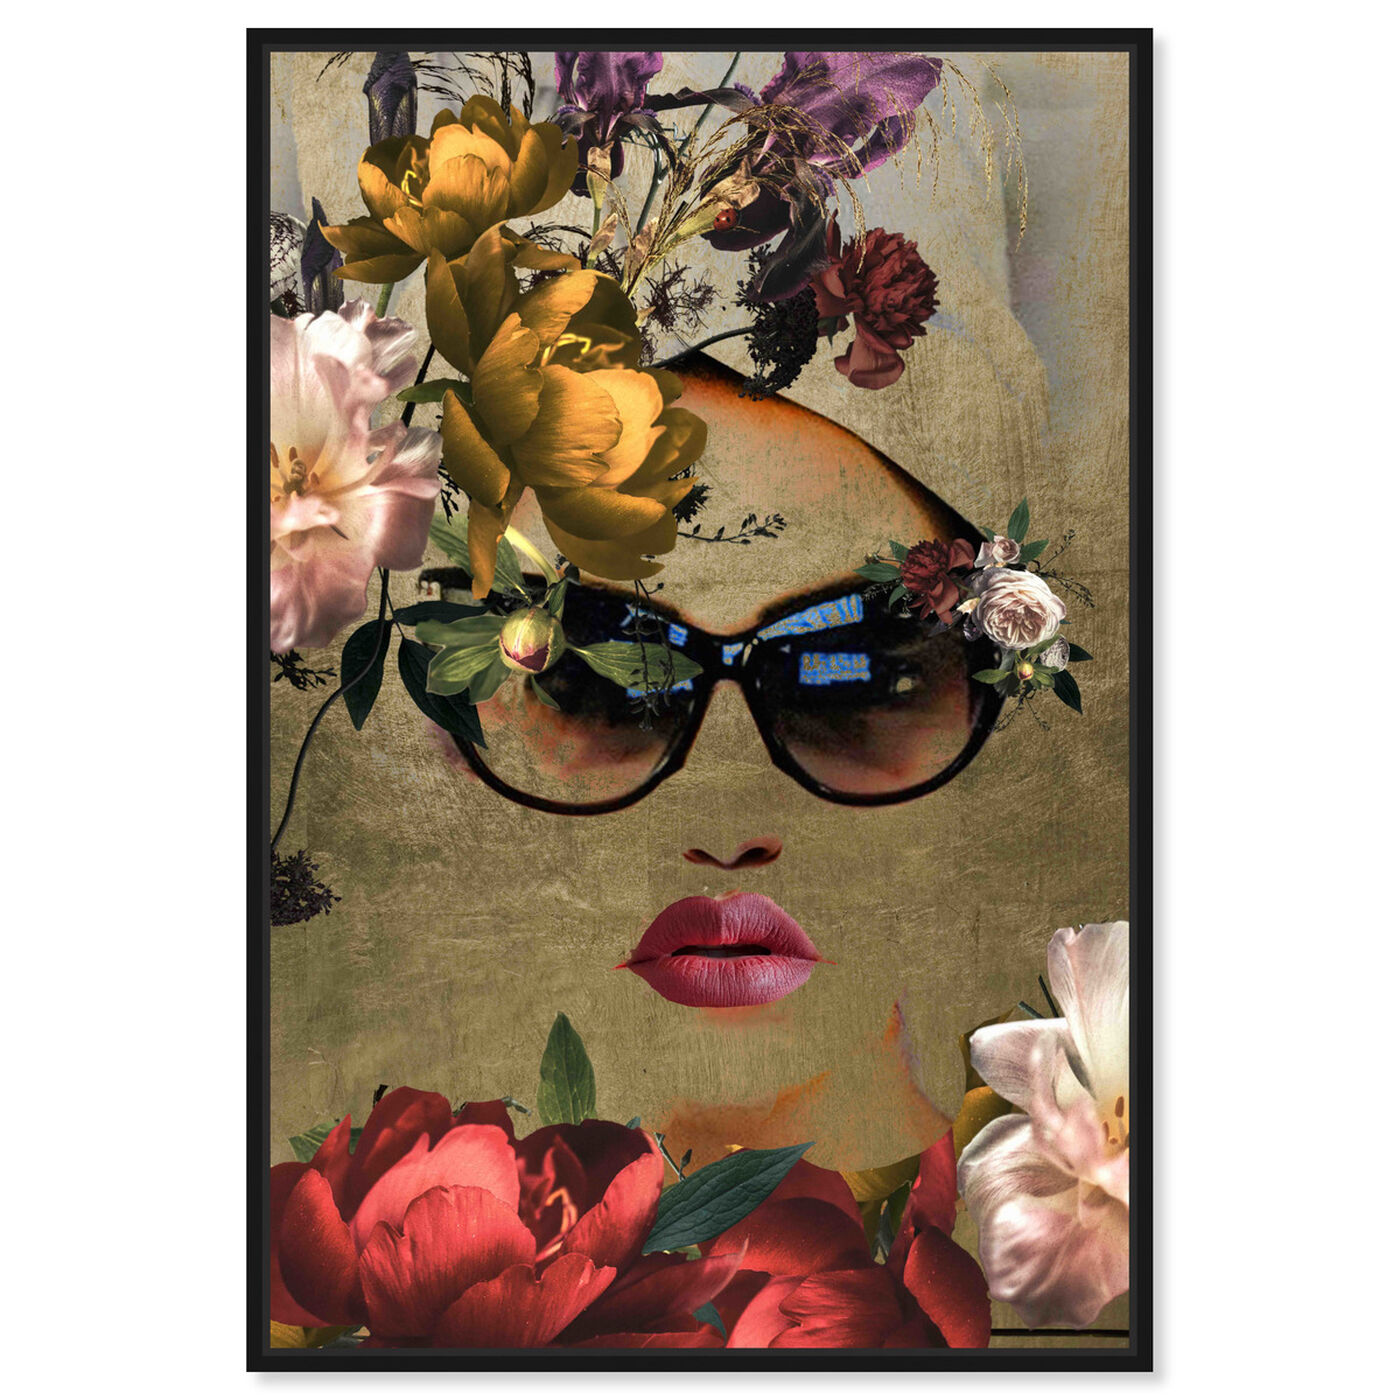 Front view of Mambo Queen featuring fashion and glam and lips art.